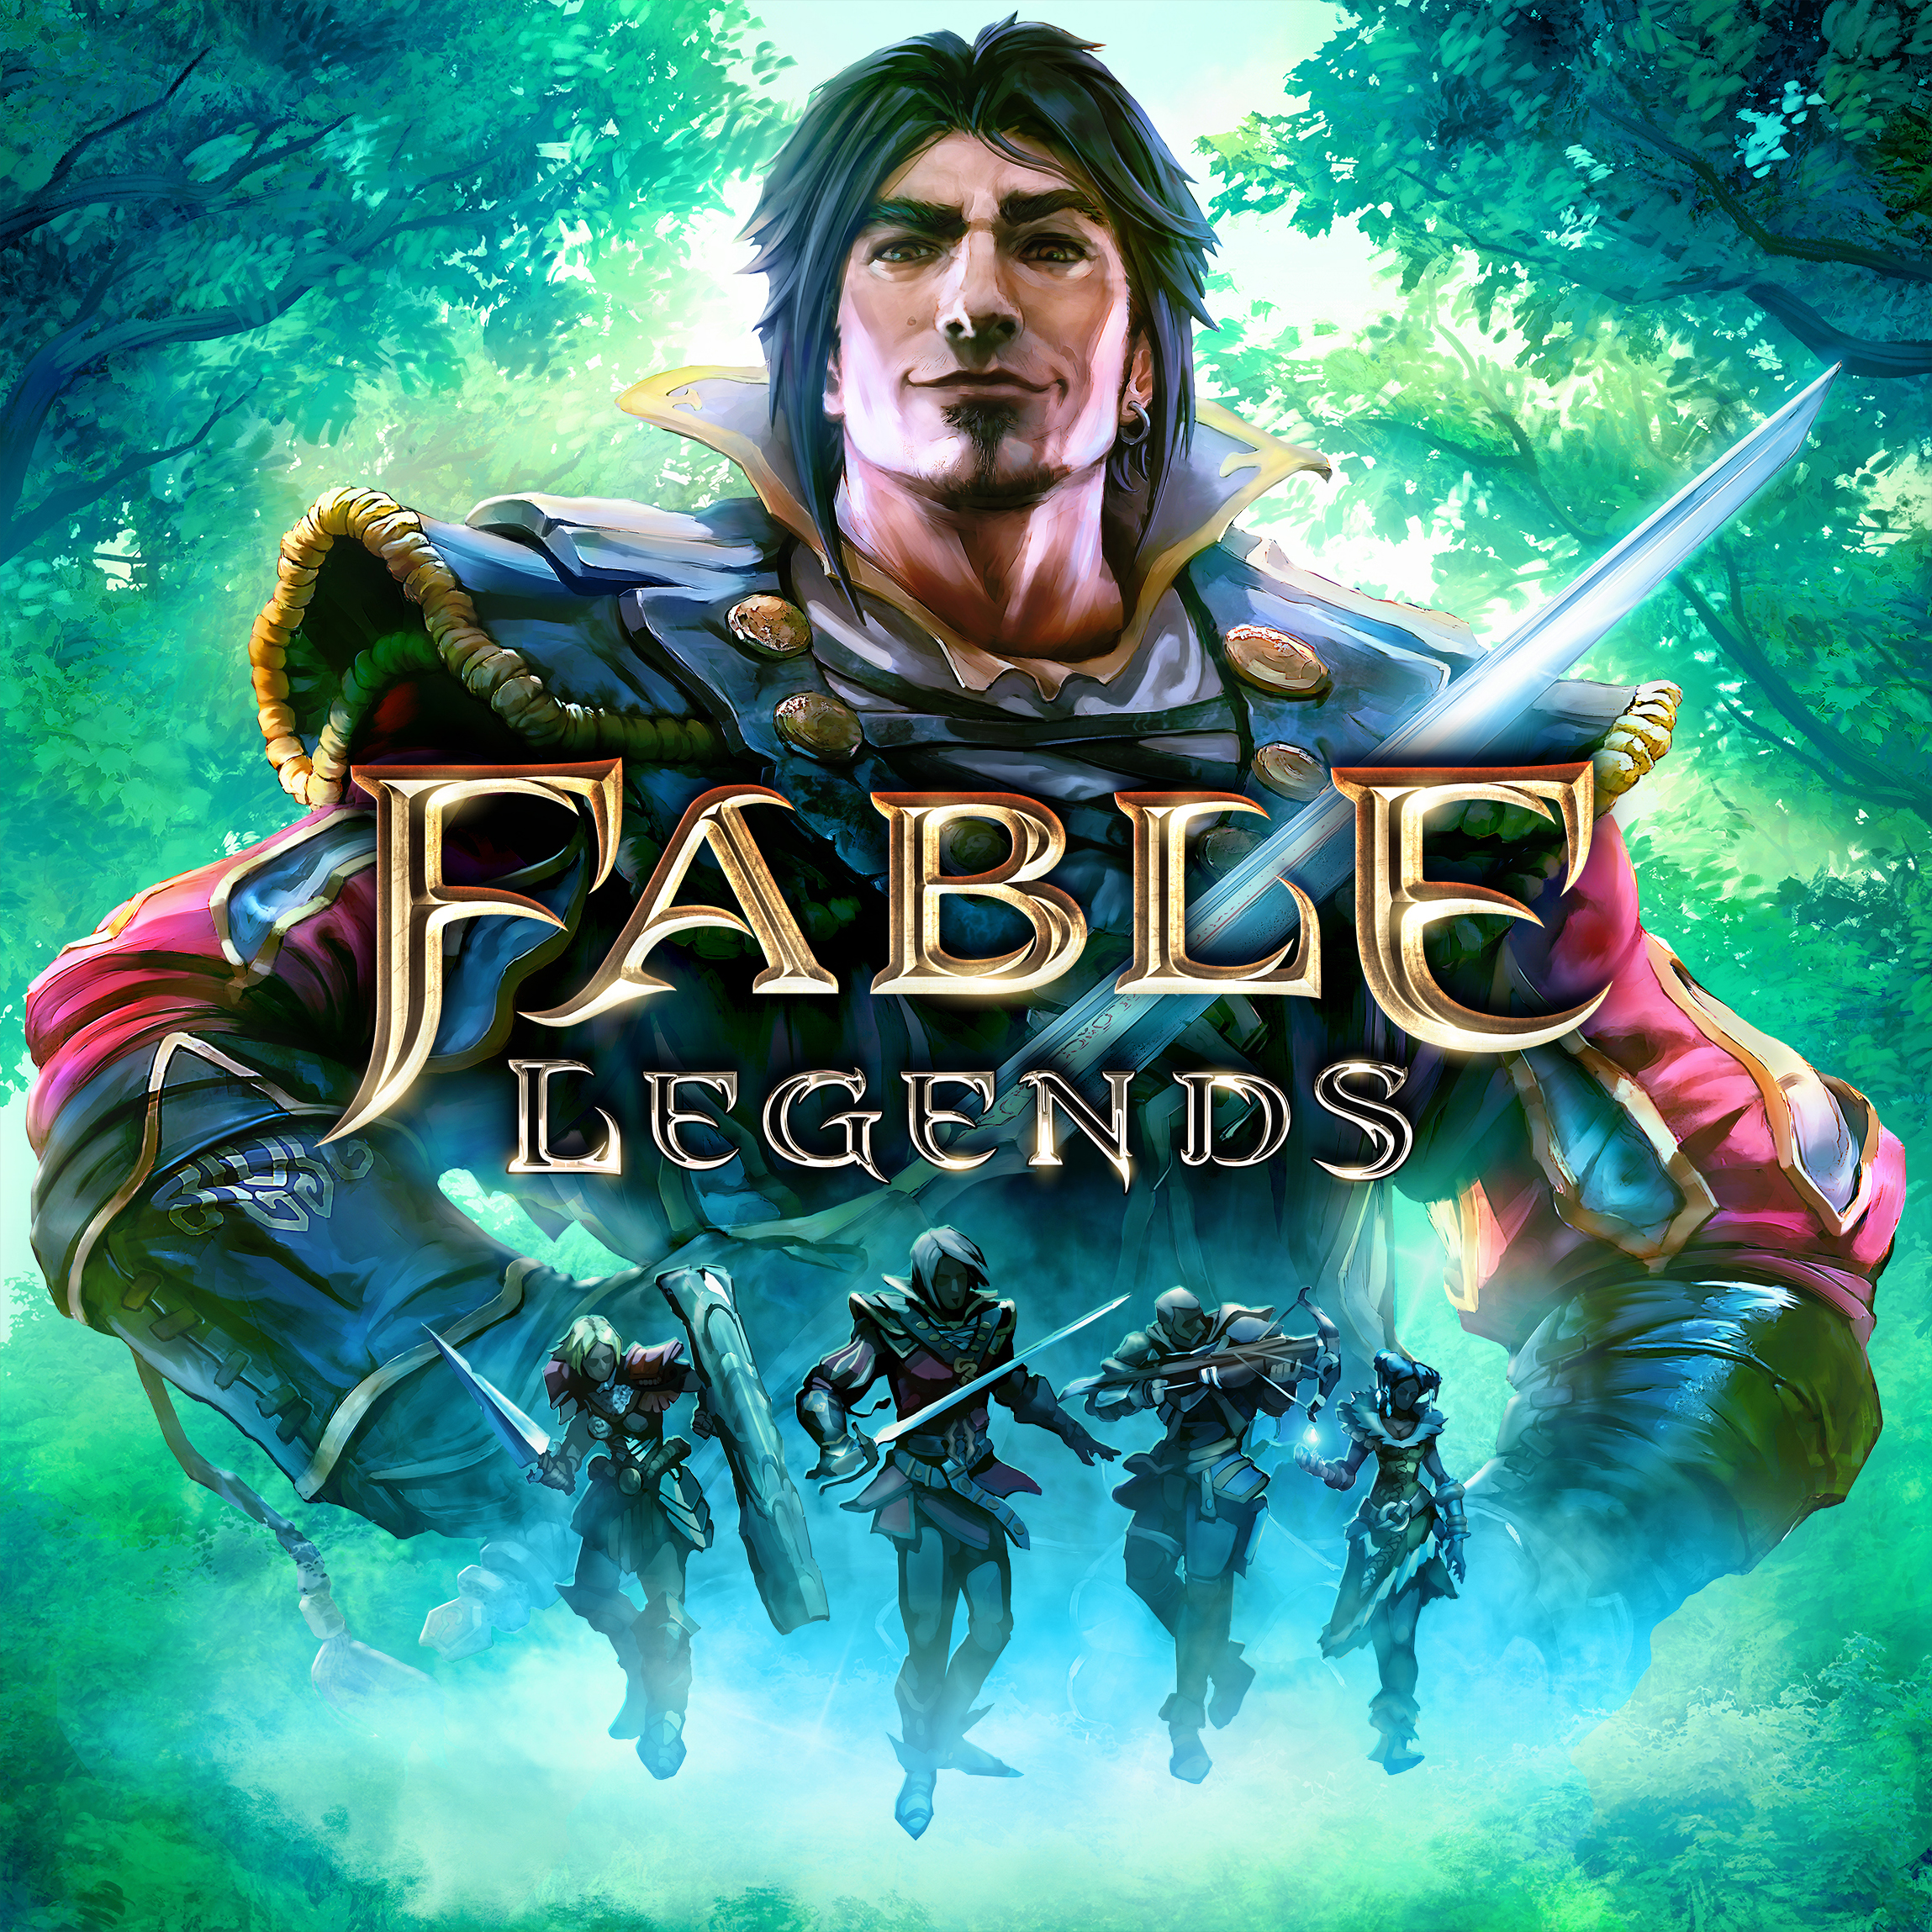 Fable legends release date in Perth